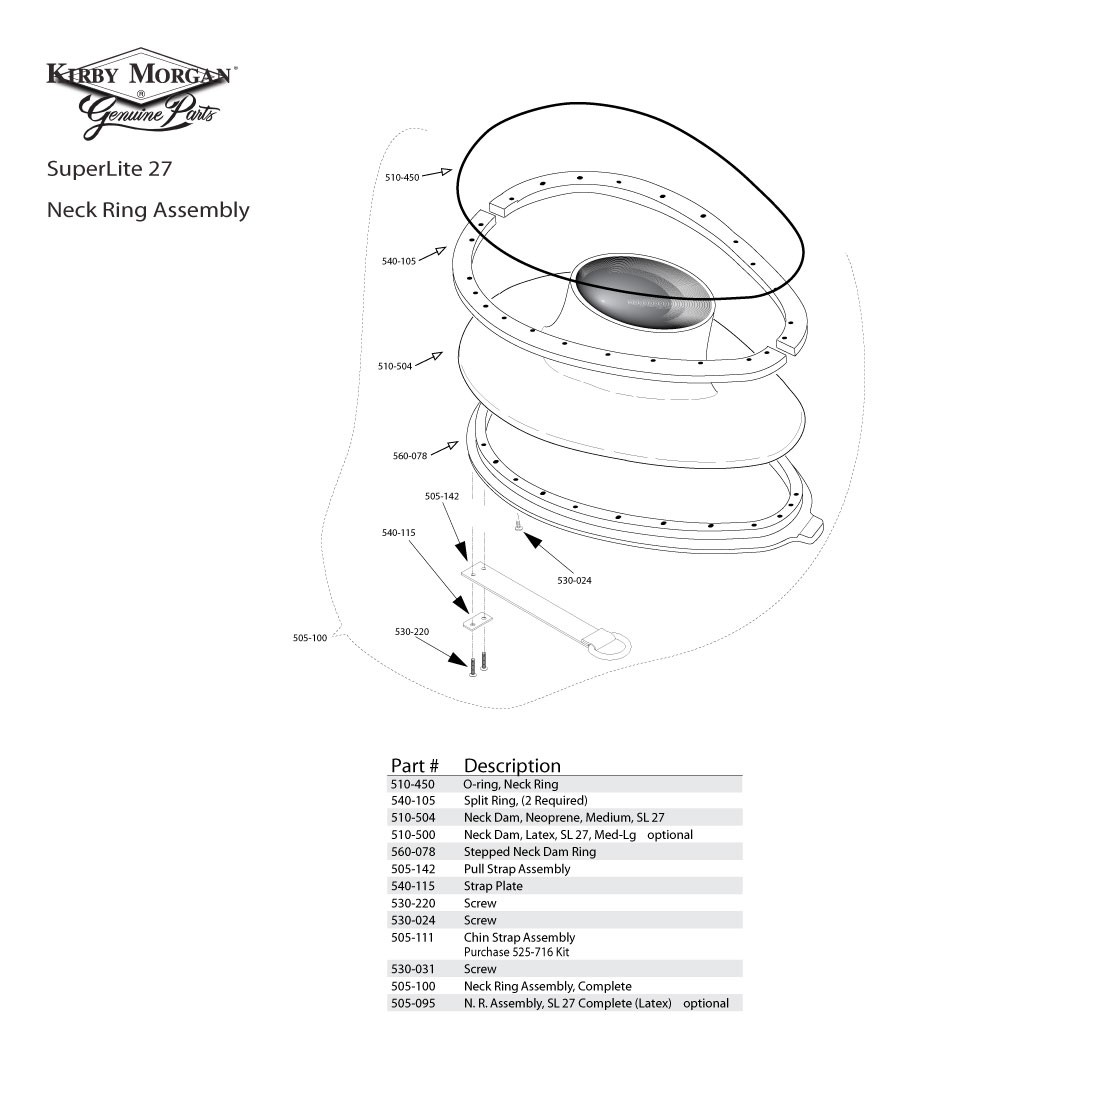 Kirby Morgan Neck Ring Assembly SuperLite 27 505-100